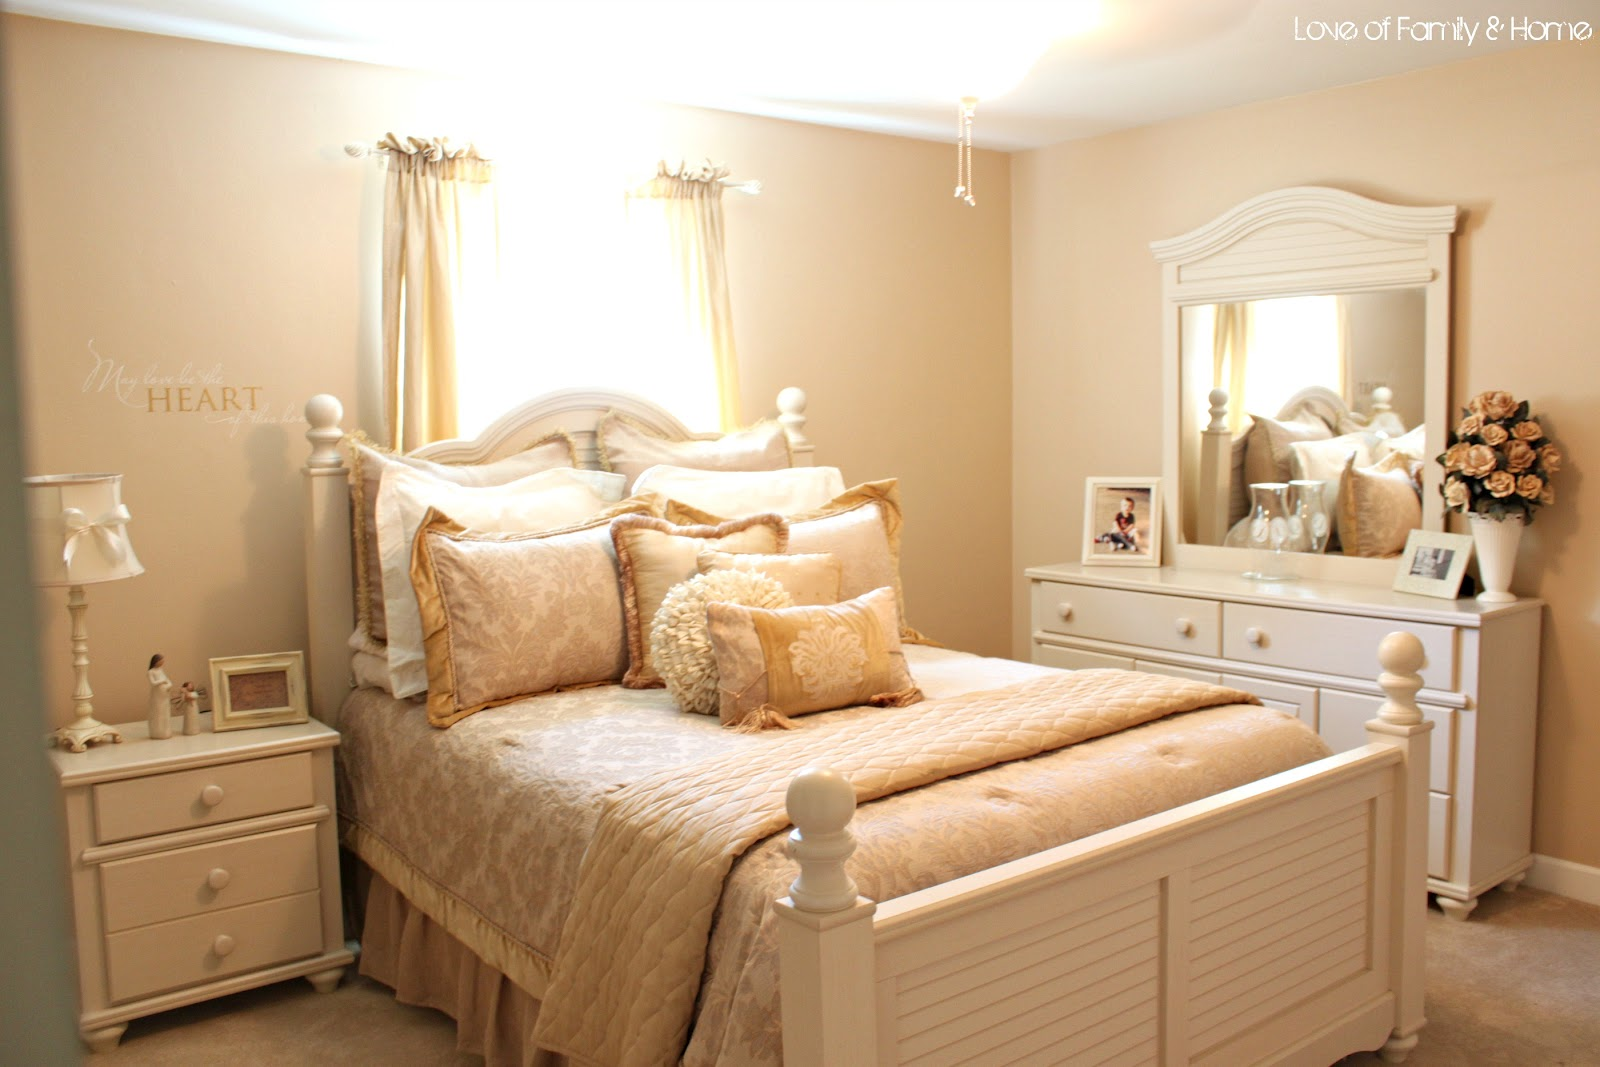 bedroom furniture makeover. 10 Cottage Style Bedrooms\u2026Makeover Inspiration Bedroom Furniture Makeover V